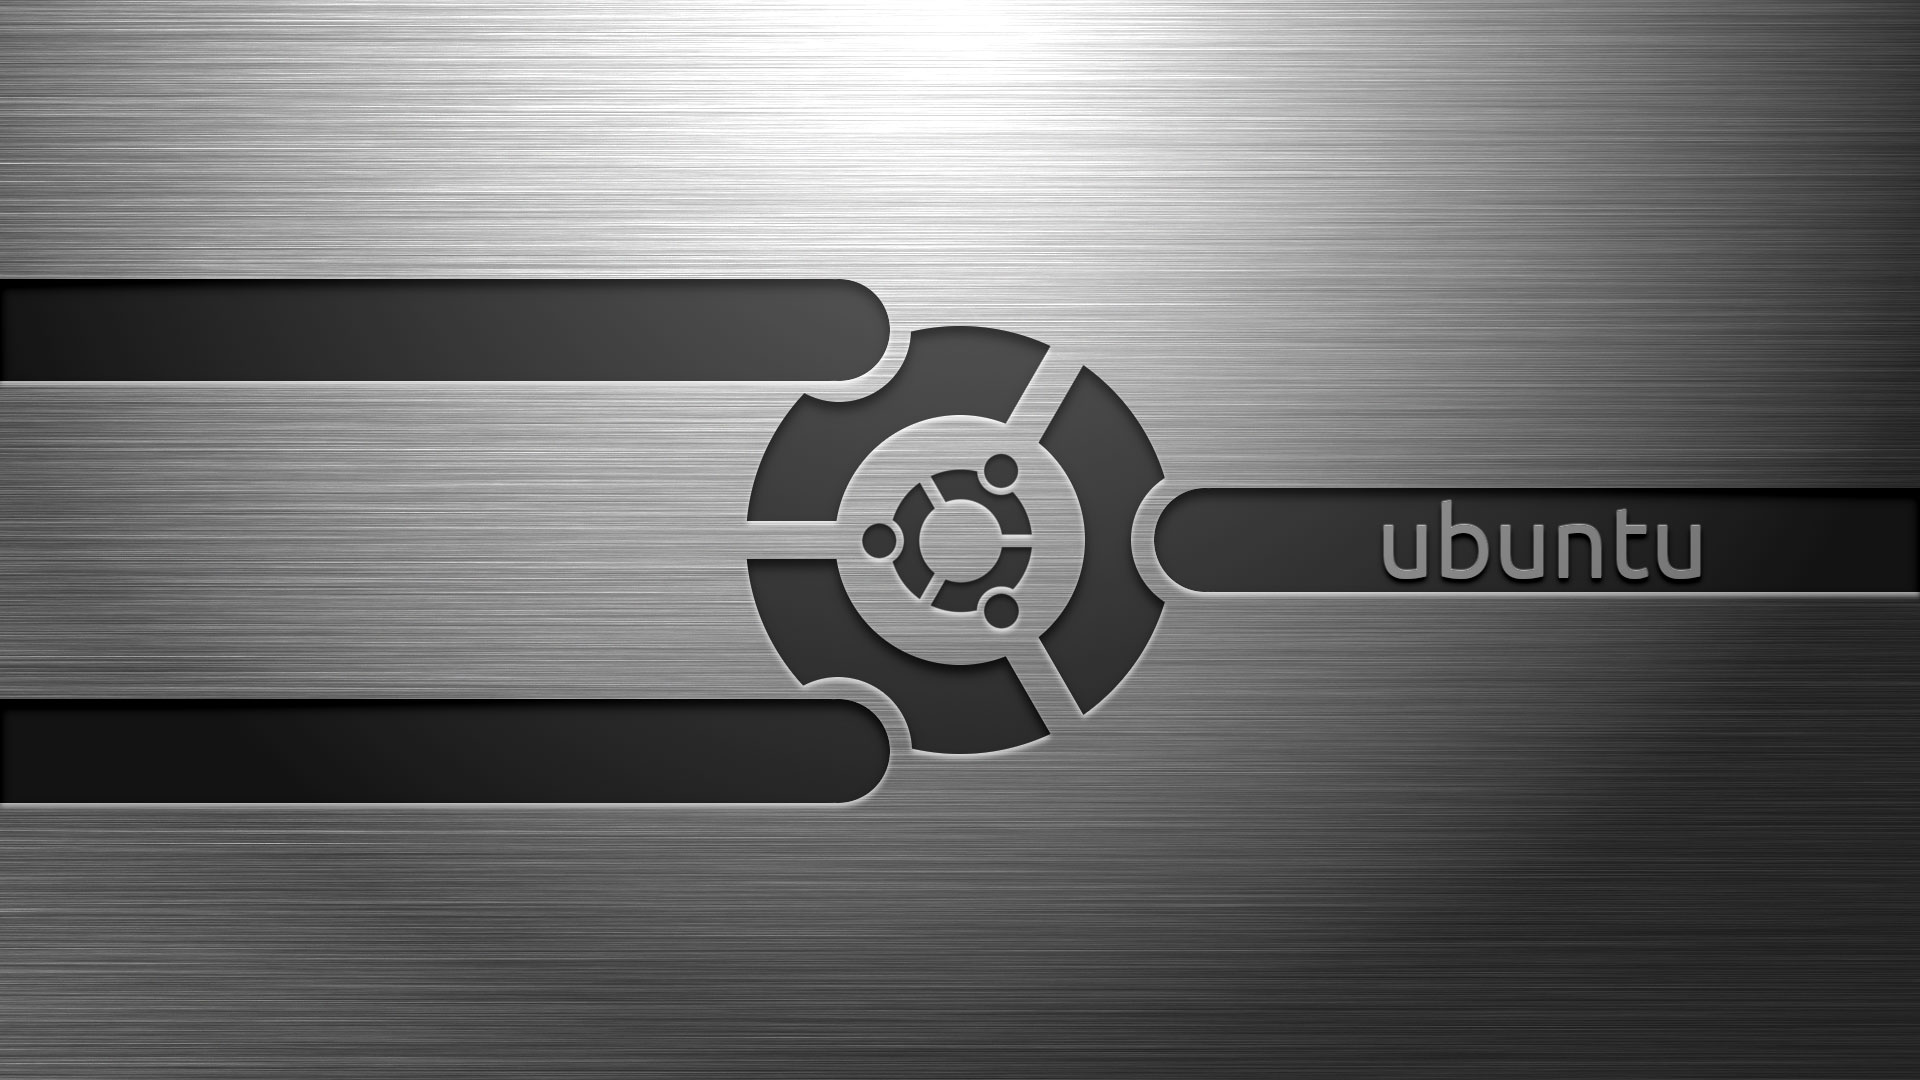 How to Optimize Your Ubuntu's Performance